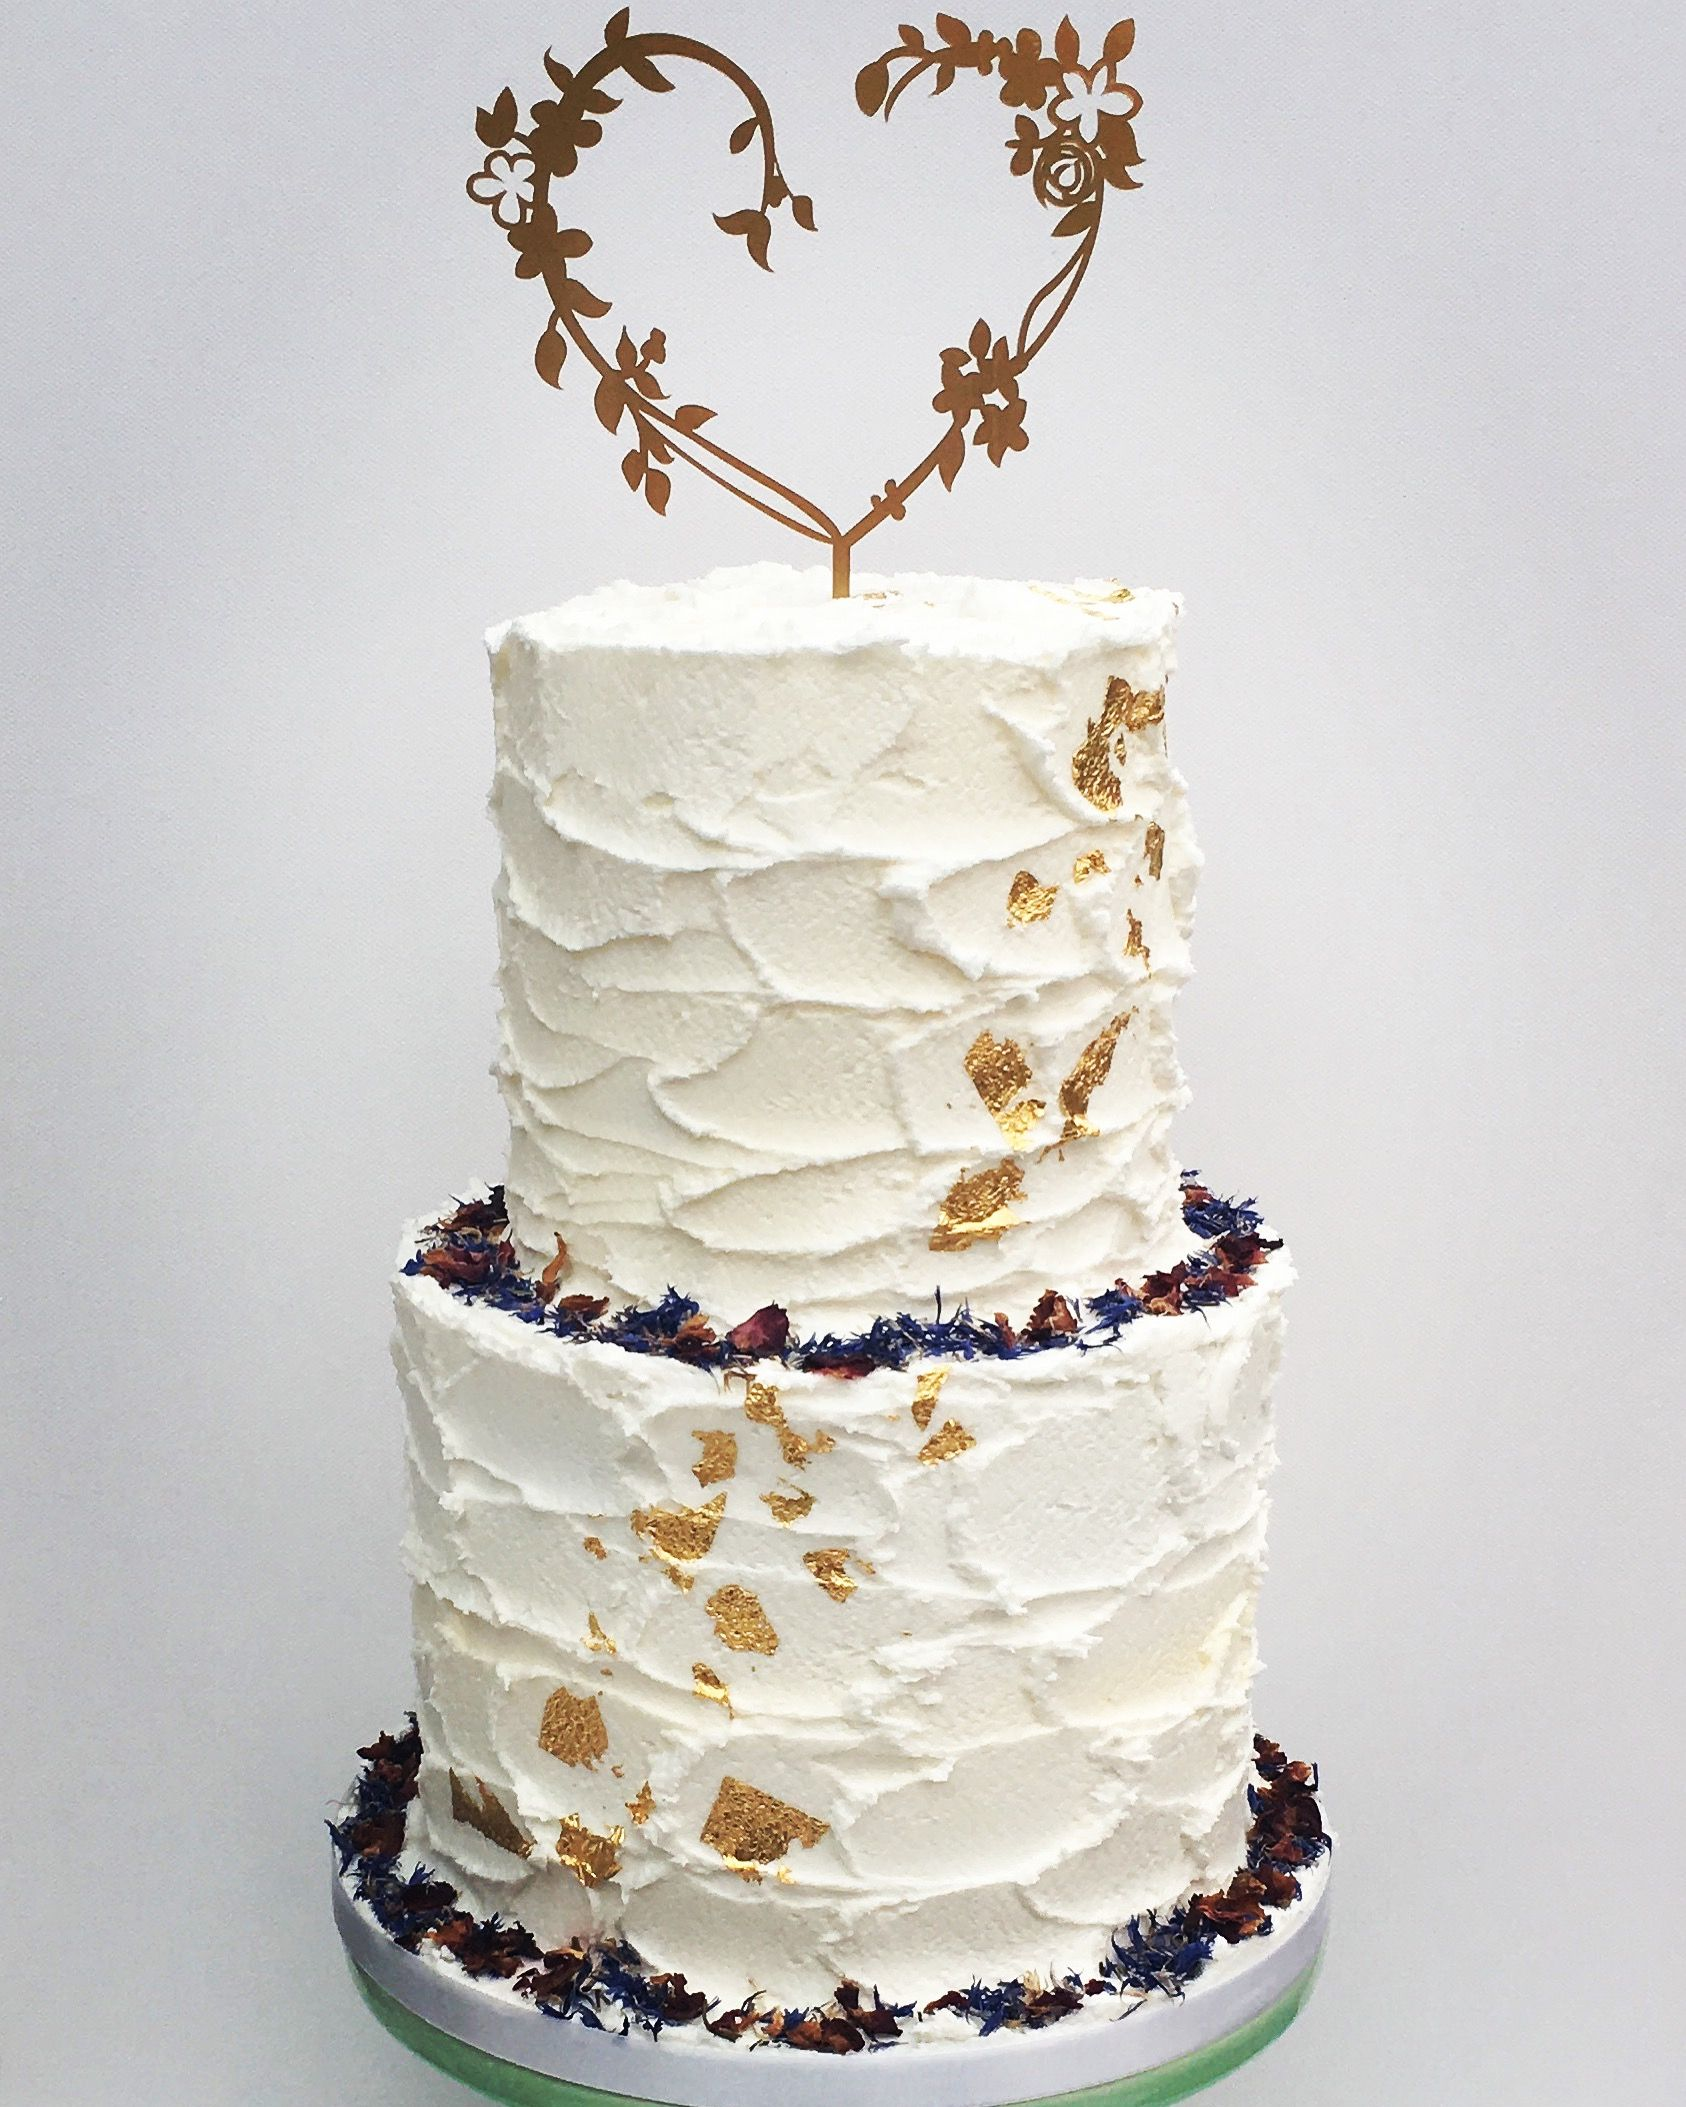 Flower Cake Toppers For Weddings: Rustic Buttercream Wedding Cake Gold Leaf Edible Flowers